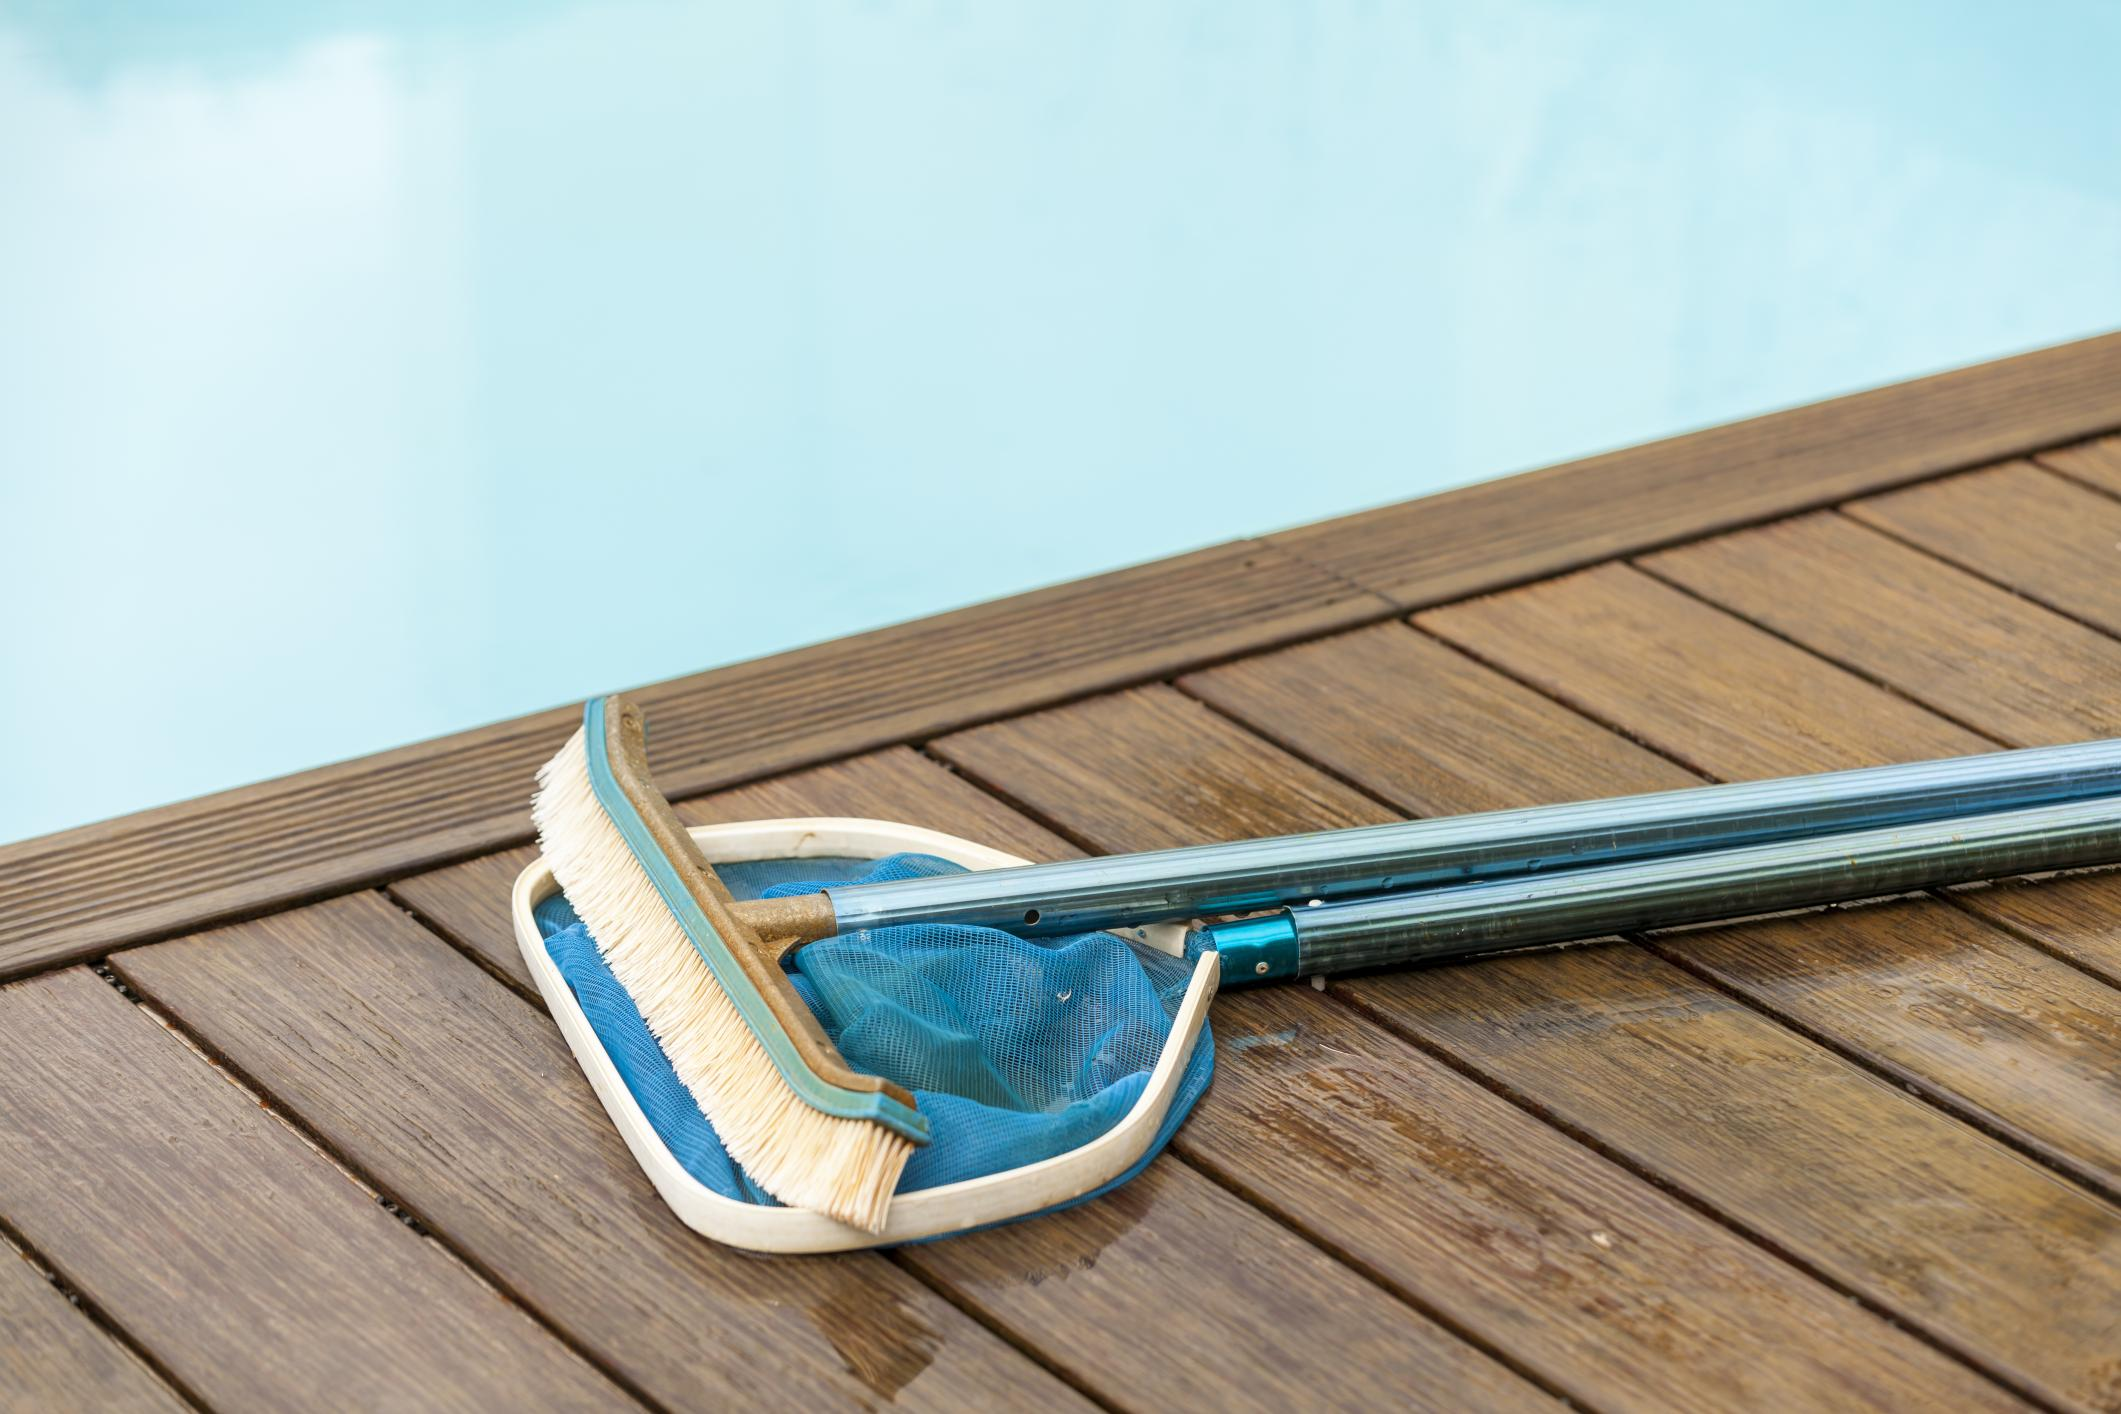 pool cleaning tools left beside the pool